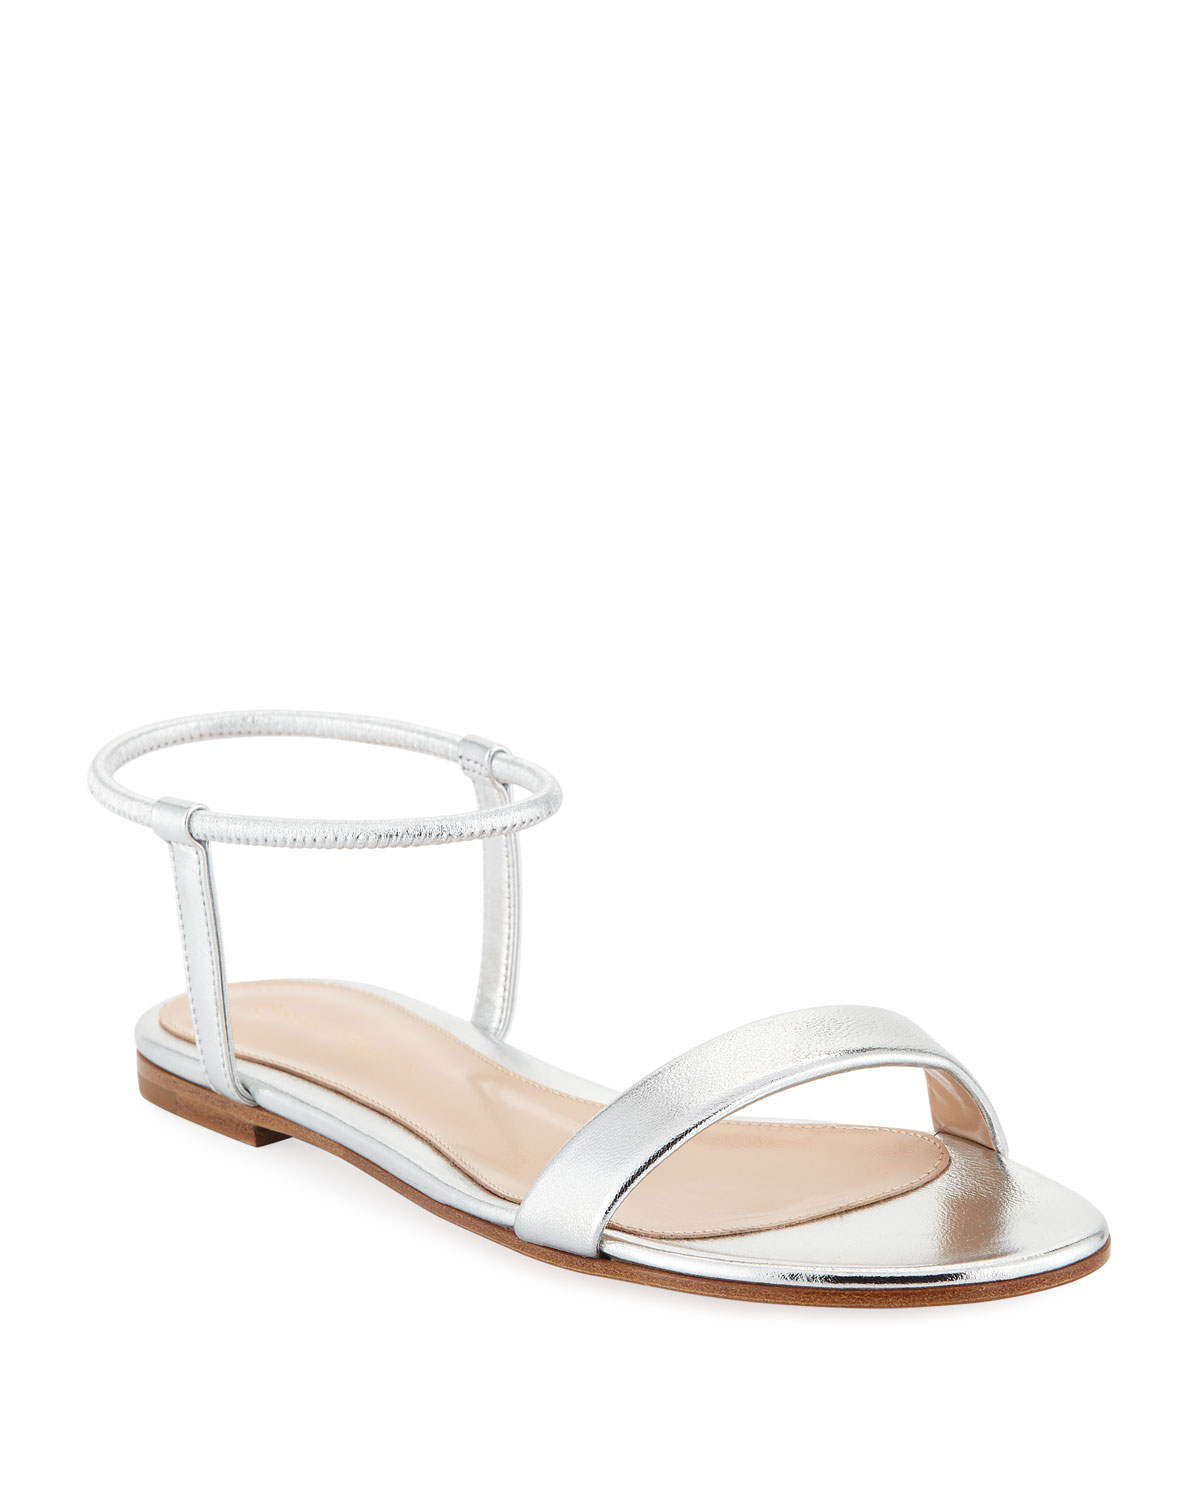 9c6a8038c93 Gianvito Rossi Flat Metallic Leather Ankle-Wrap Sandals